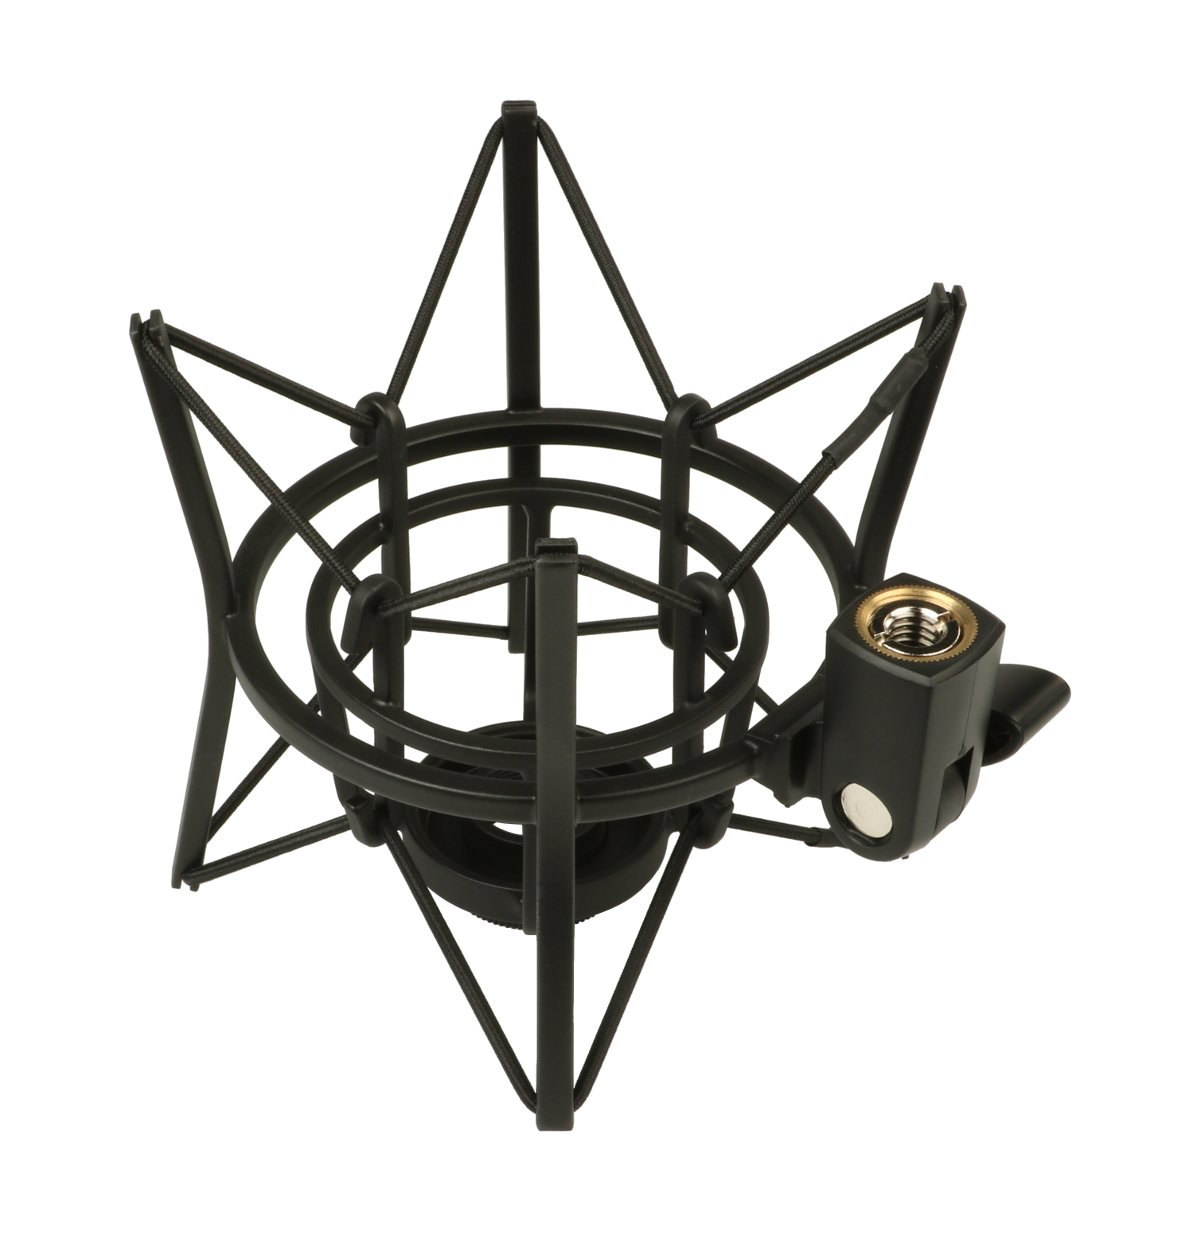 akg 1040z00020 sh100 shockmount for akg perception200 microphone full compass systems. Black Bedroom Furniture Sets. Home Design Ideas